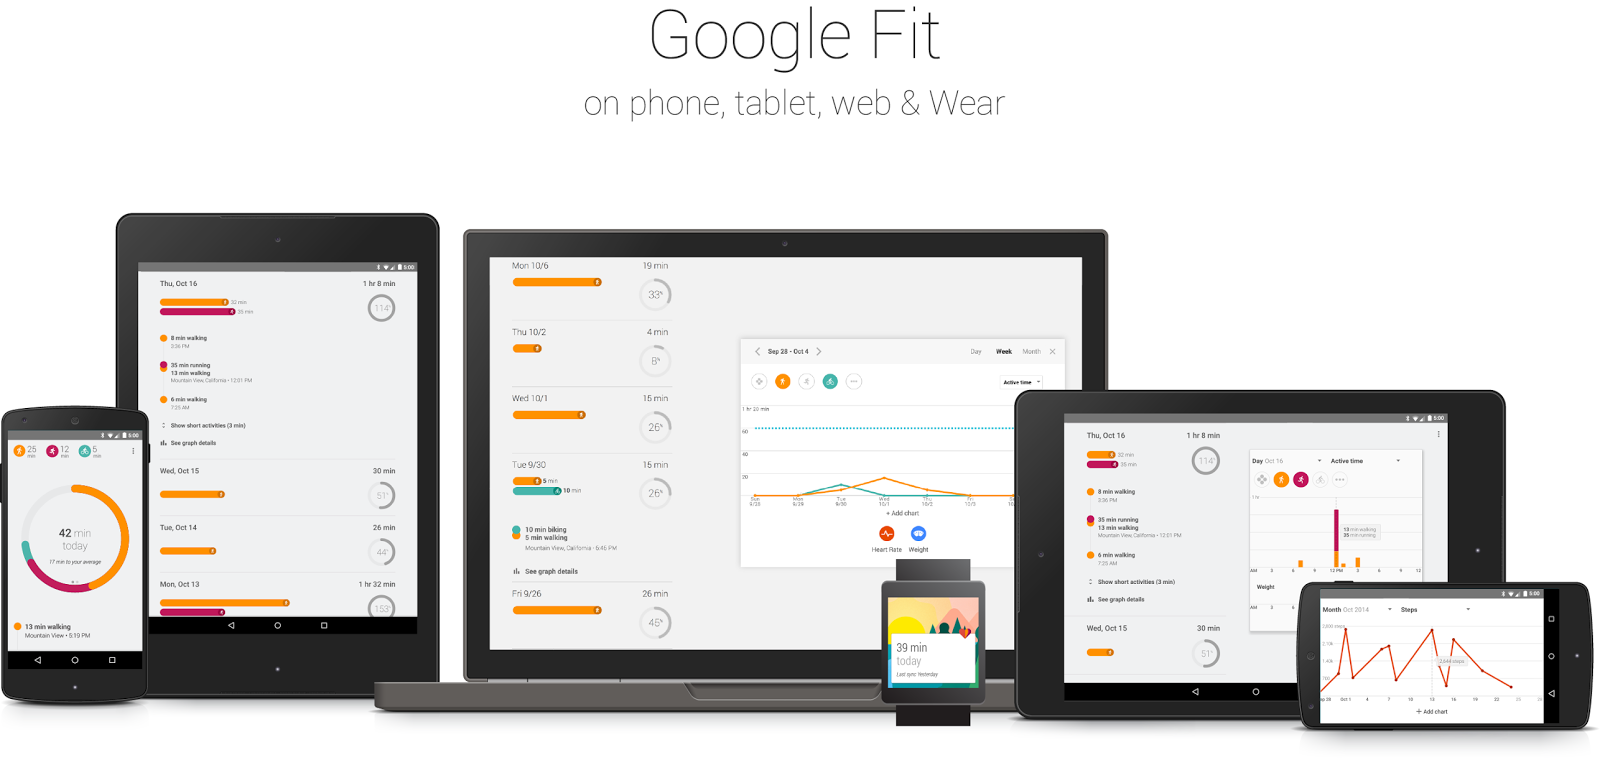 fit hero 1 - Google releases the Google Fit app to the Play Store [Download APK here]